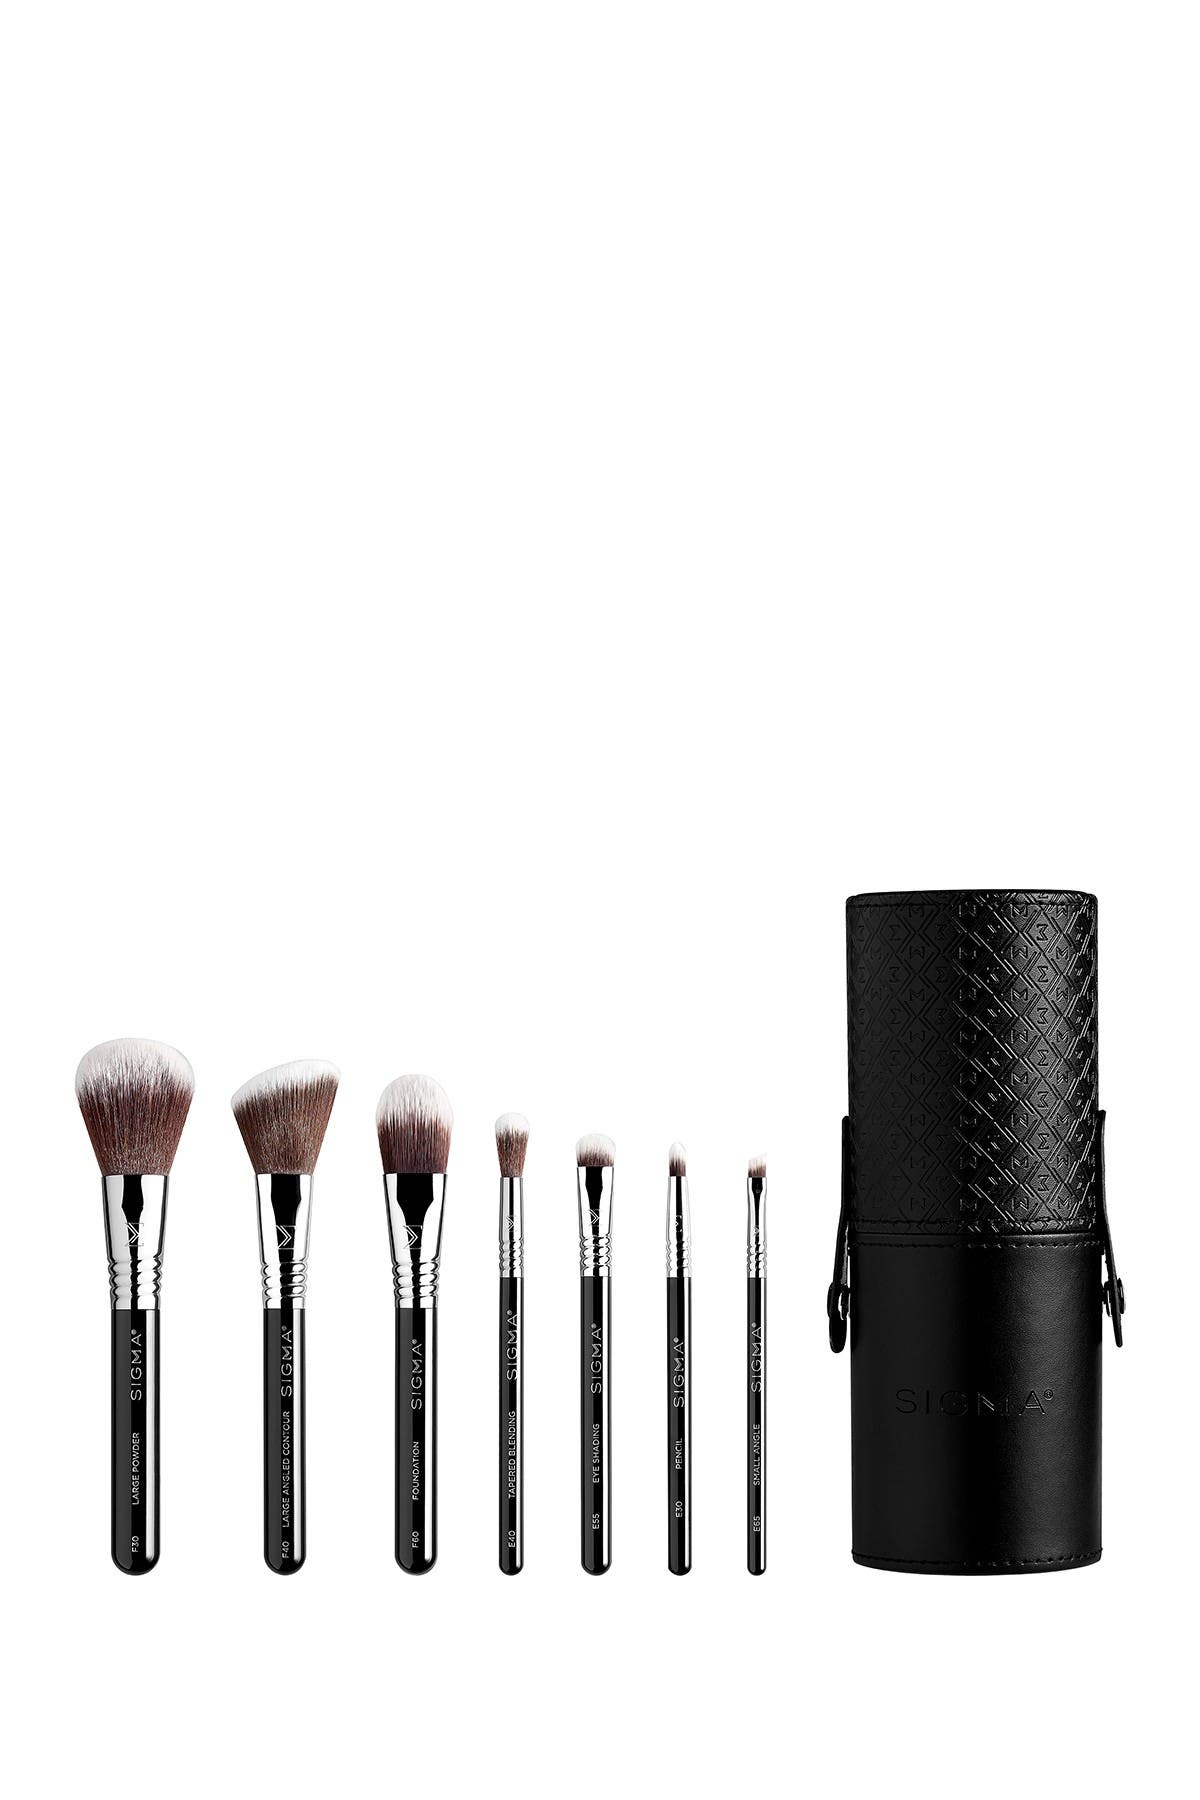 Image of SIGMA x® Essential Travel Brush Set